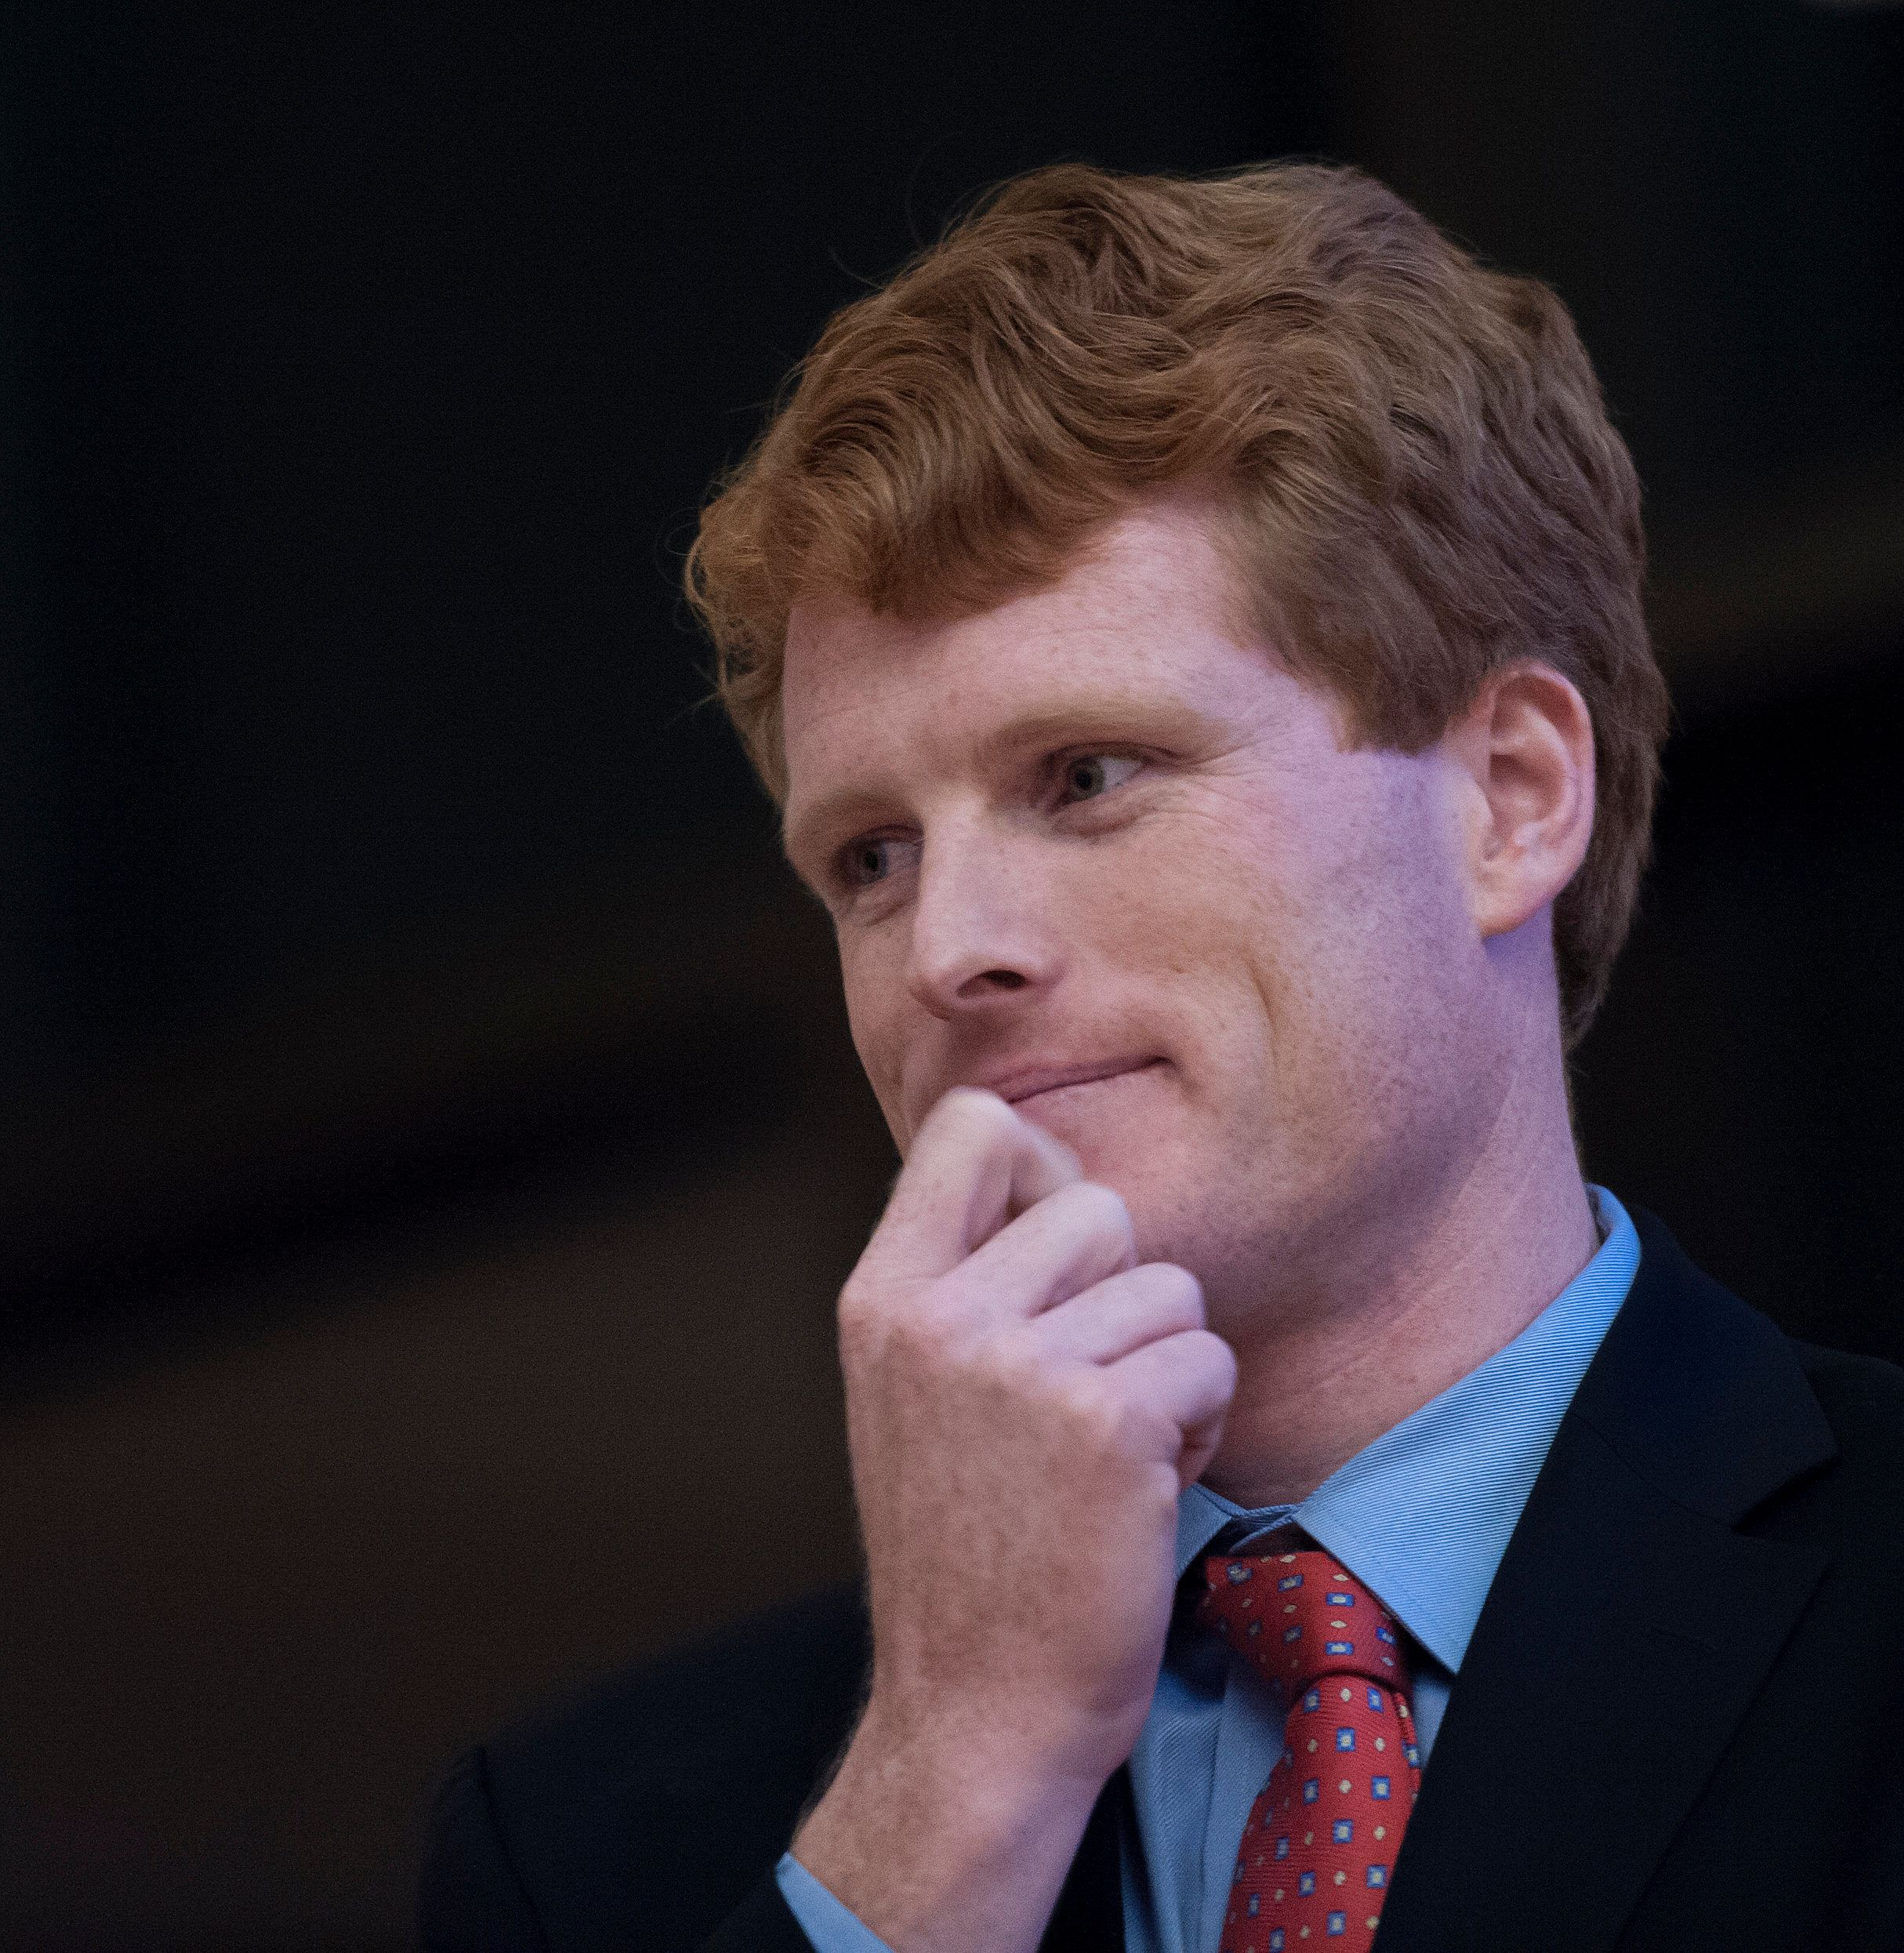 Rep. Joe Kennedy III will deliver the Democratic response to the president's State of the Union address Tuesday.